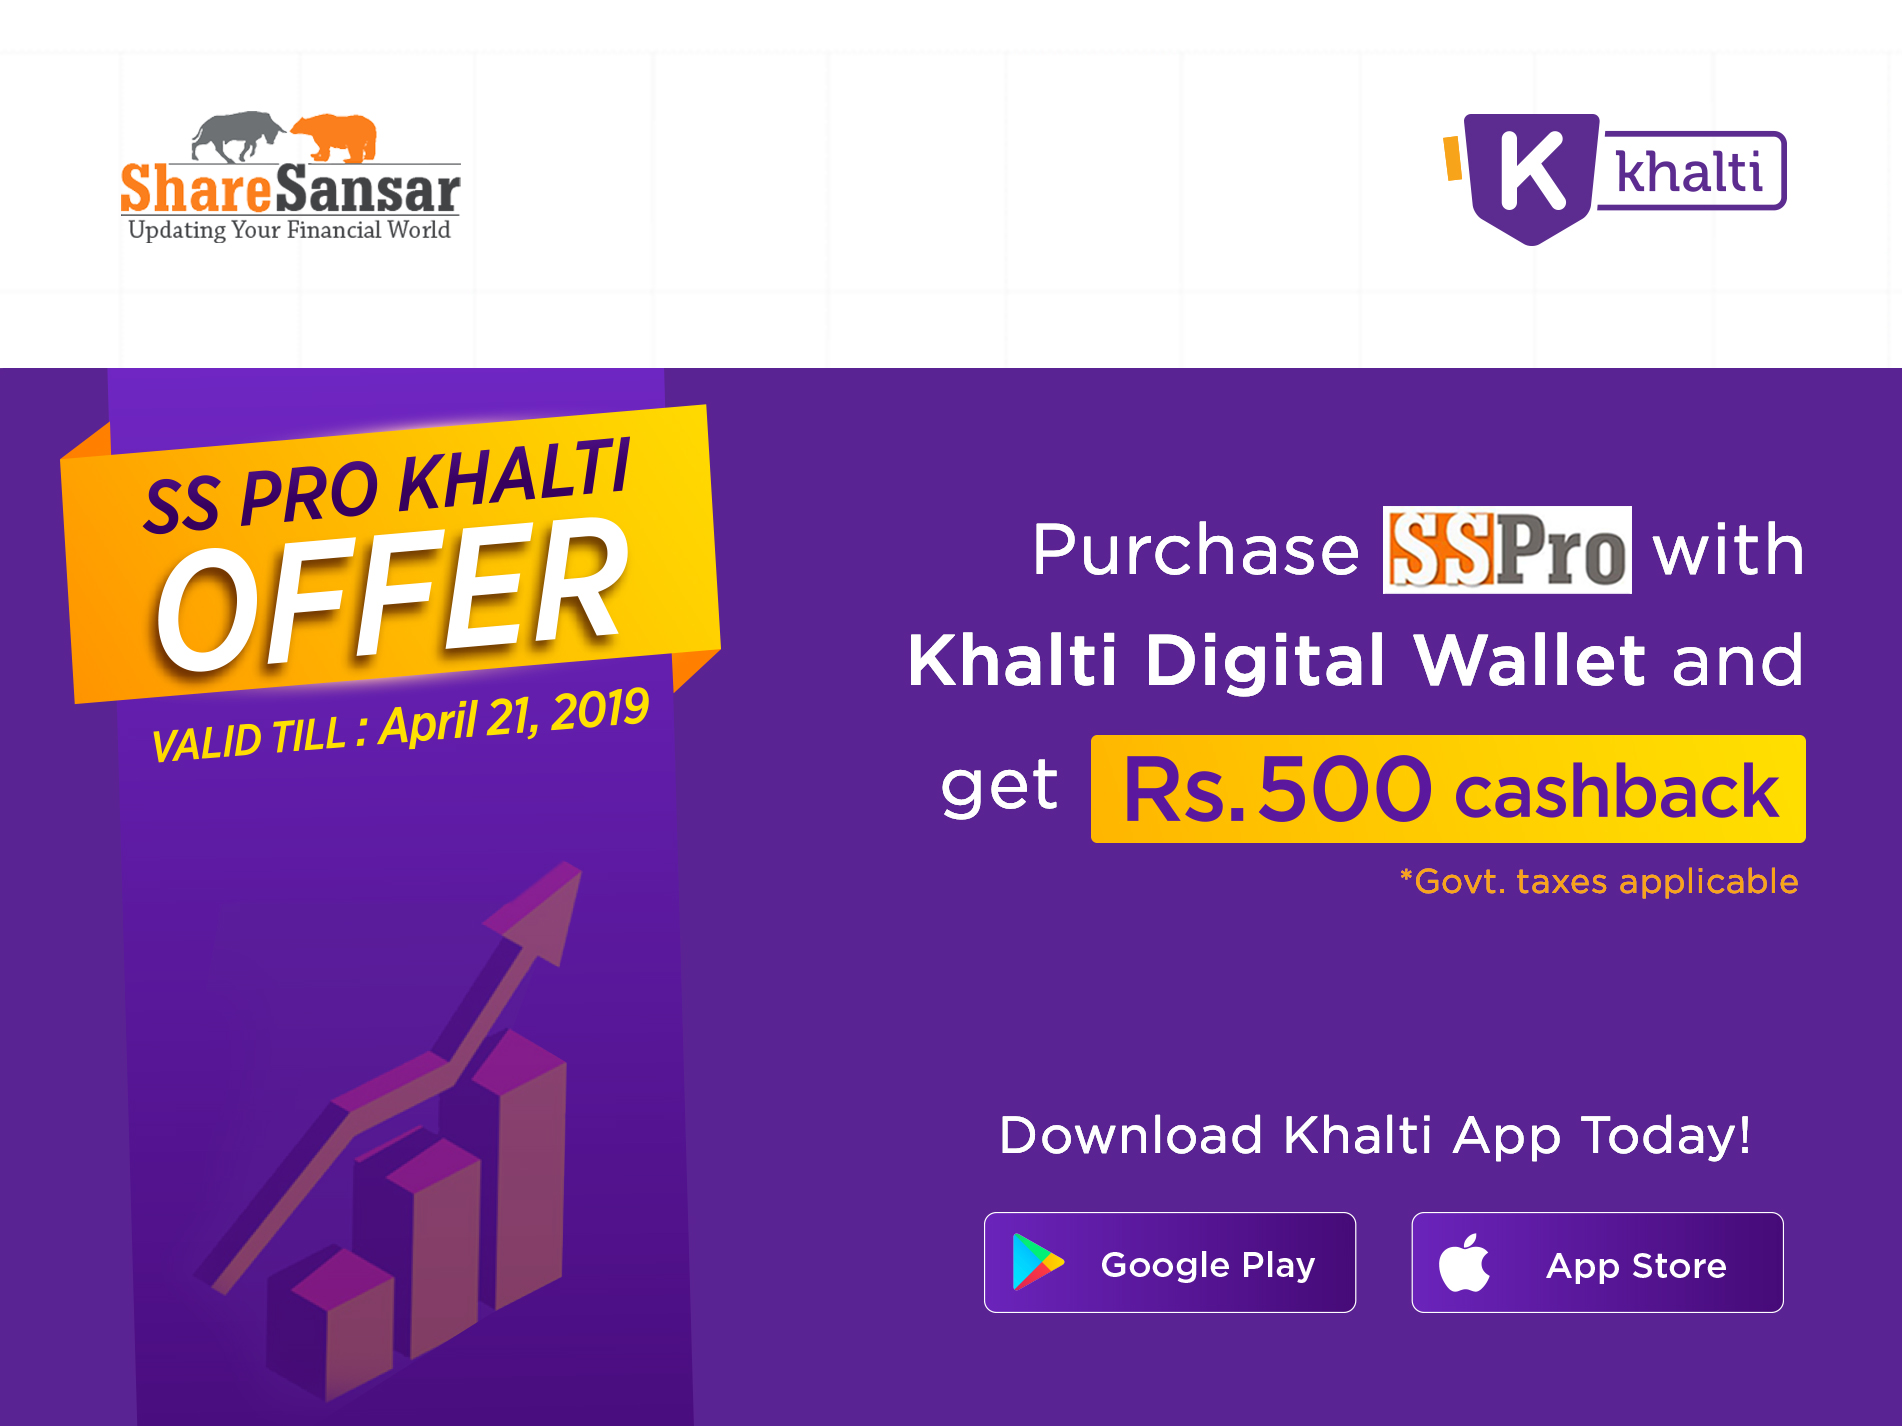 ShareSansar.com launches SS Pro software package, subscribe and pay digitally using Khalti to get Rs. 500 cashback